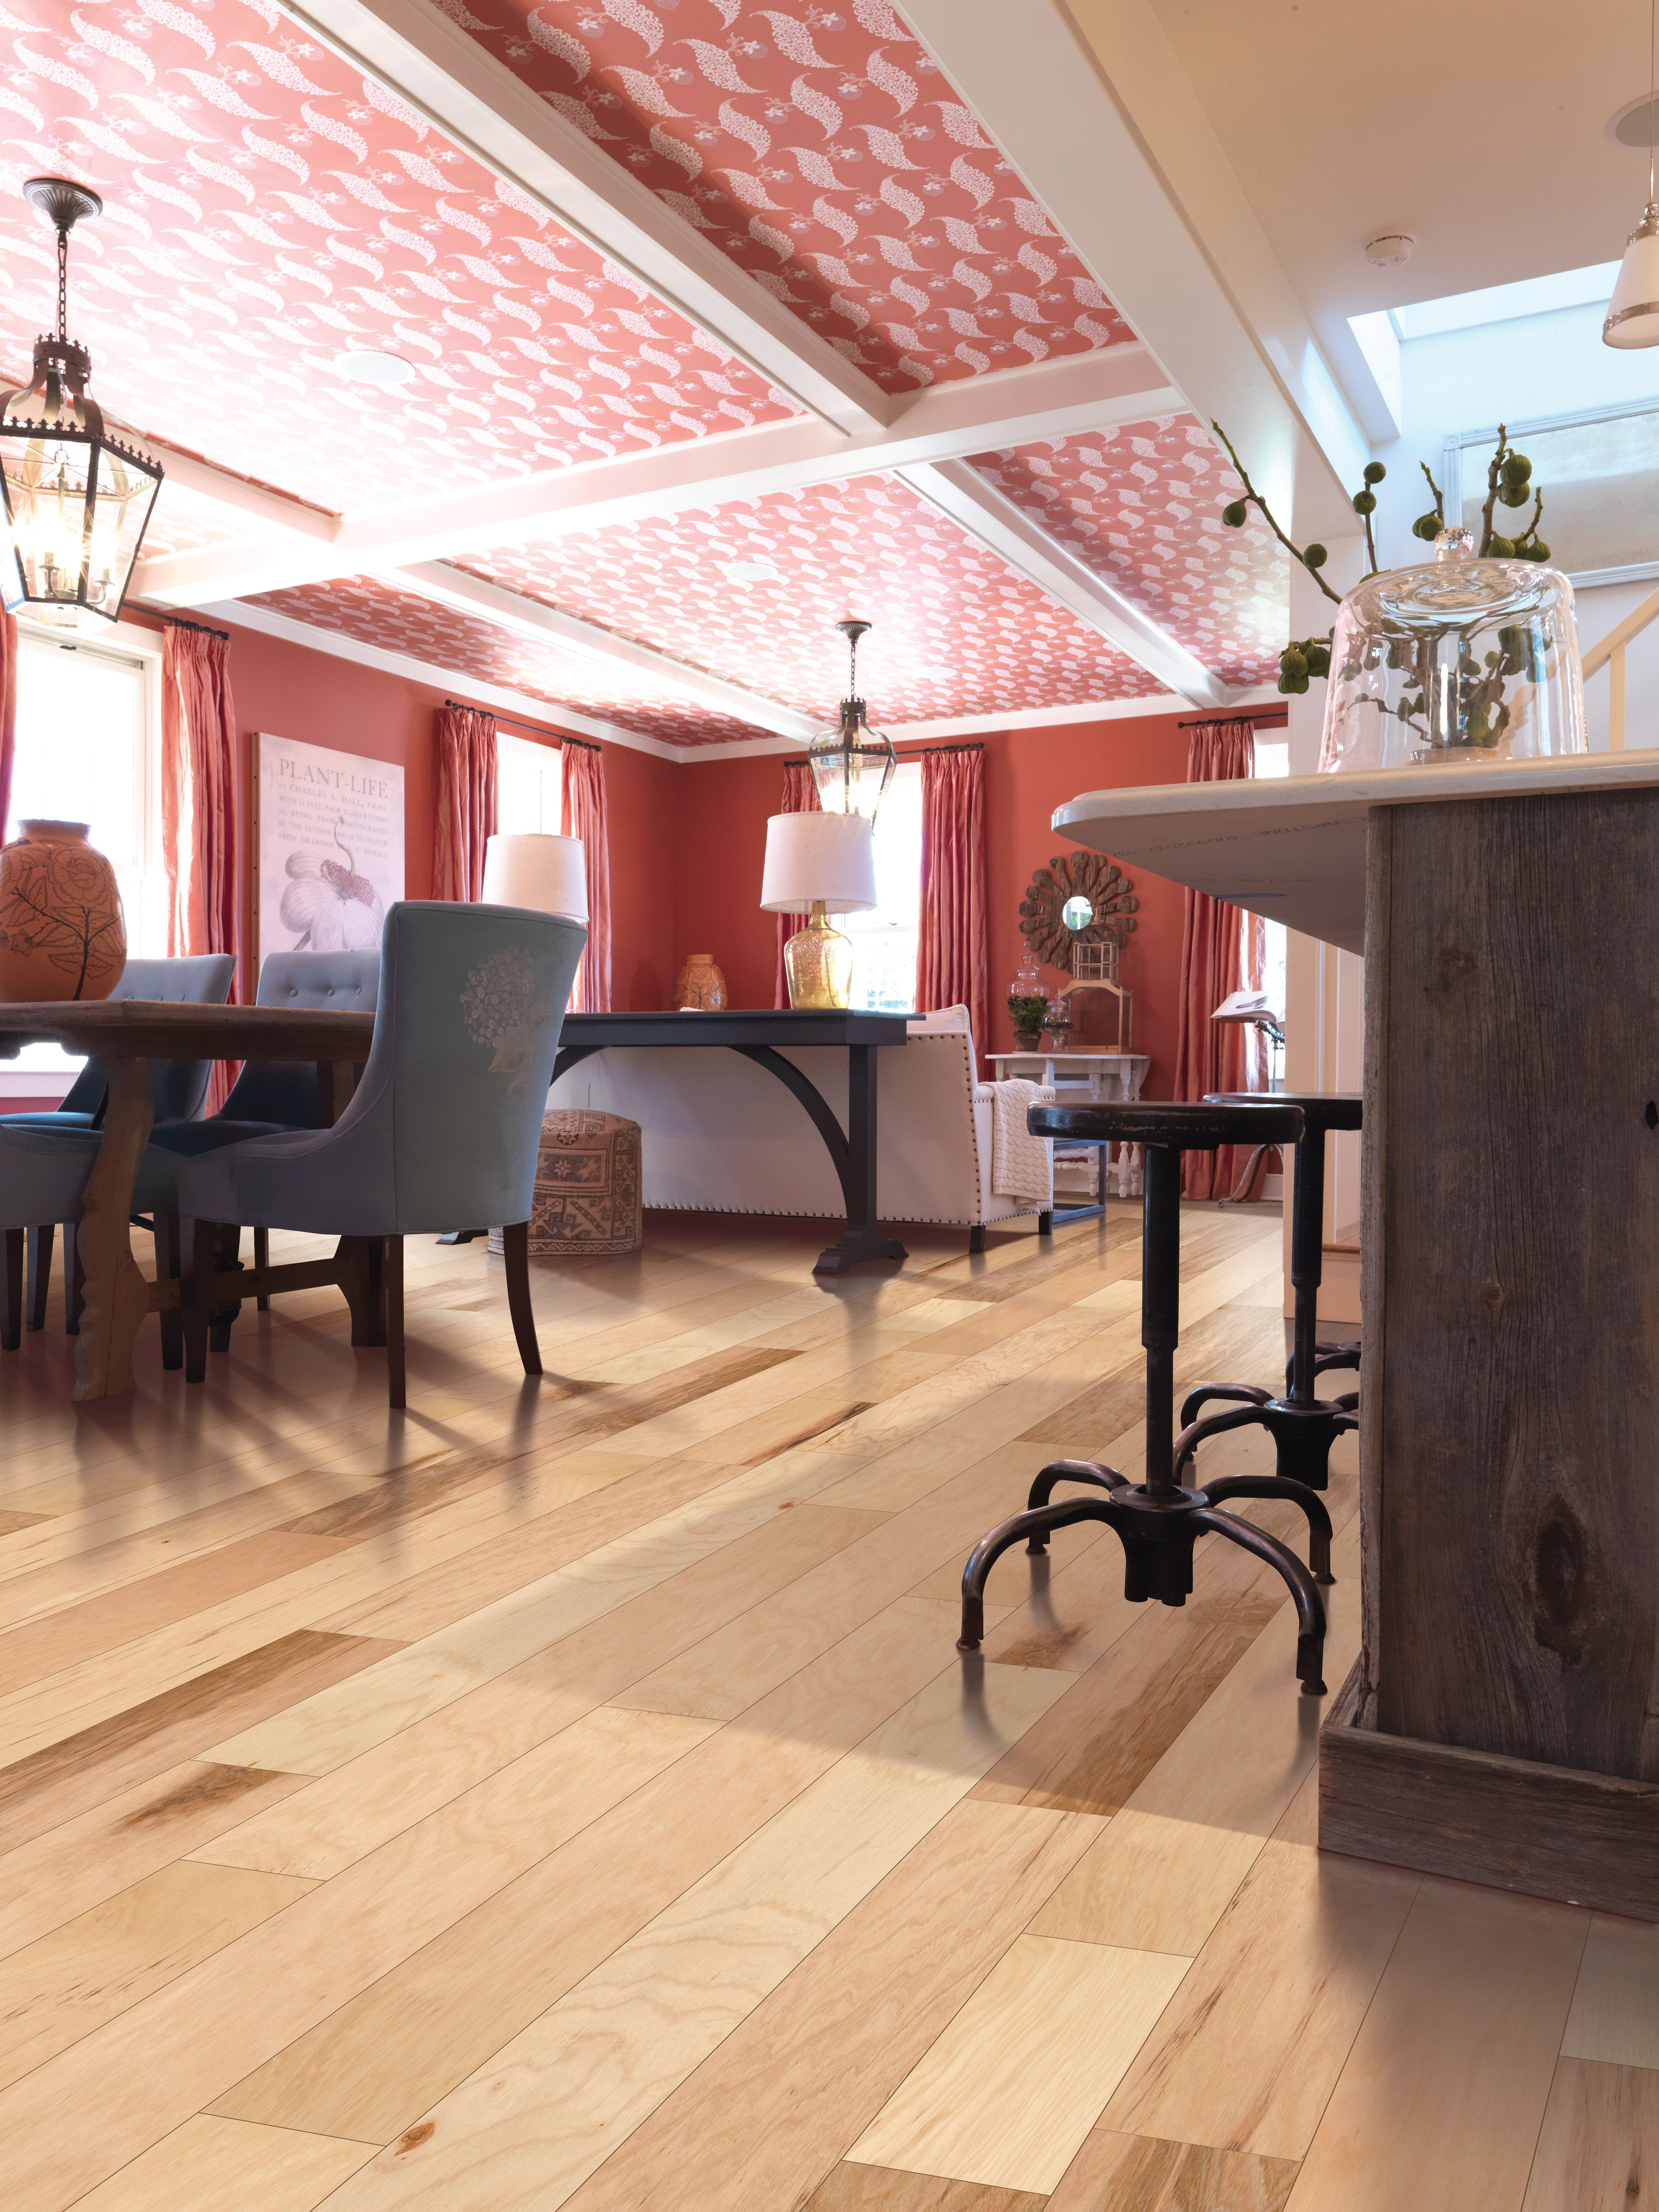 Be inspired by this hardwood floor by Mohawk. Dive into